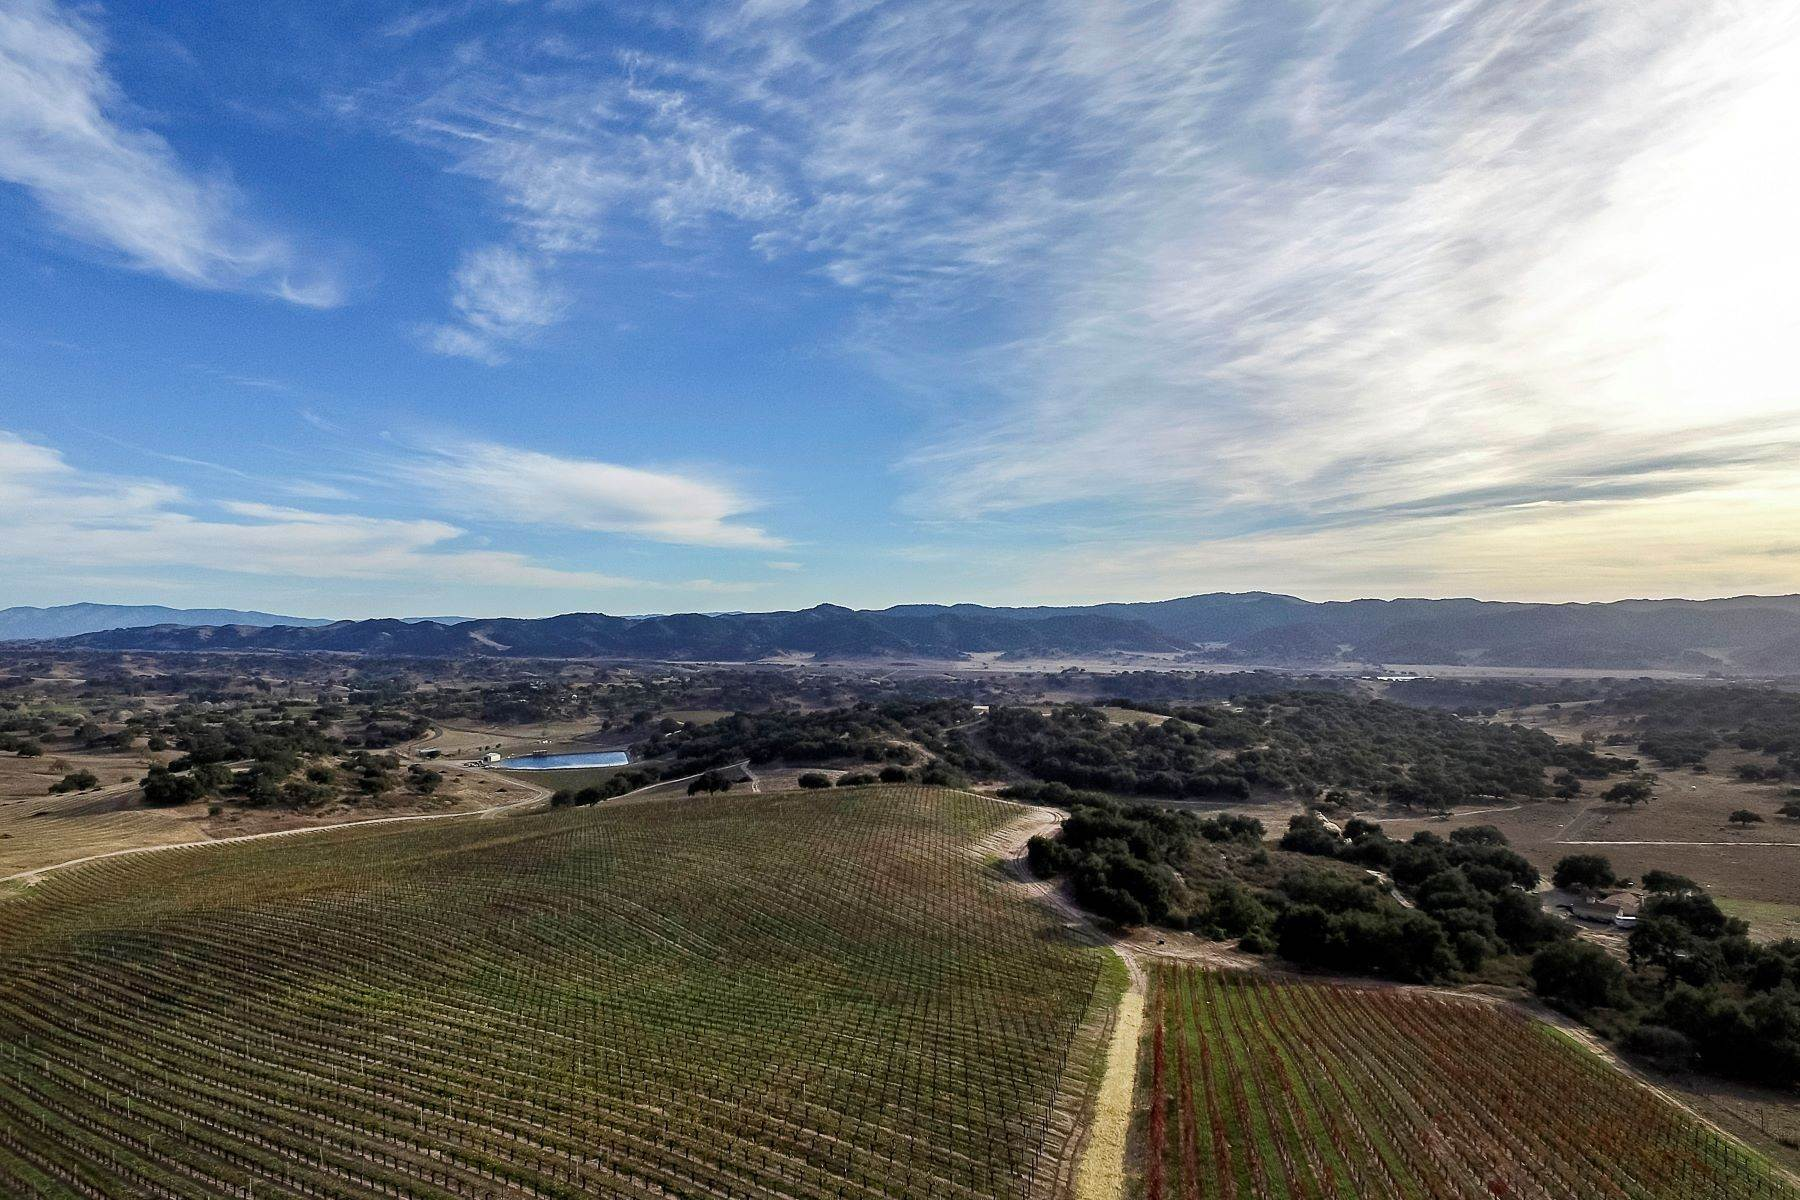 Vineyard Real Estate for Sale at Alisos Canyon Vineyard 9981 Alisos Canyon Road Los Alamos, California 93440 United States